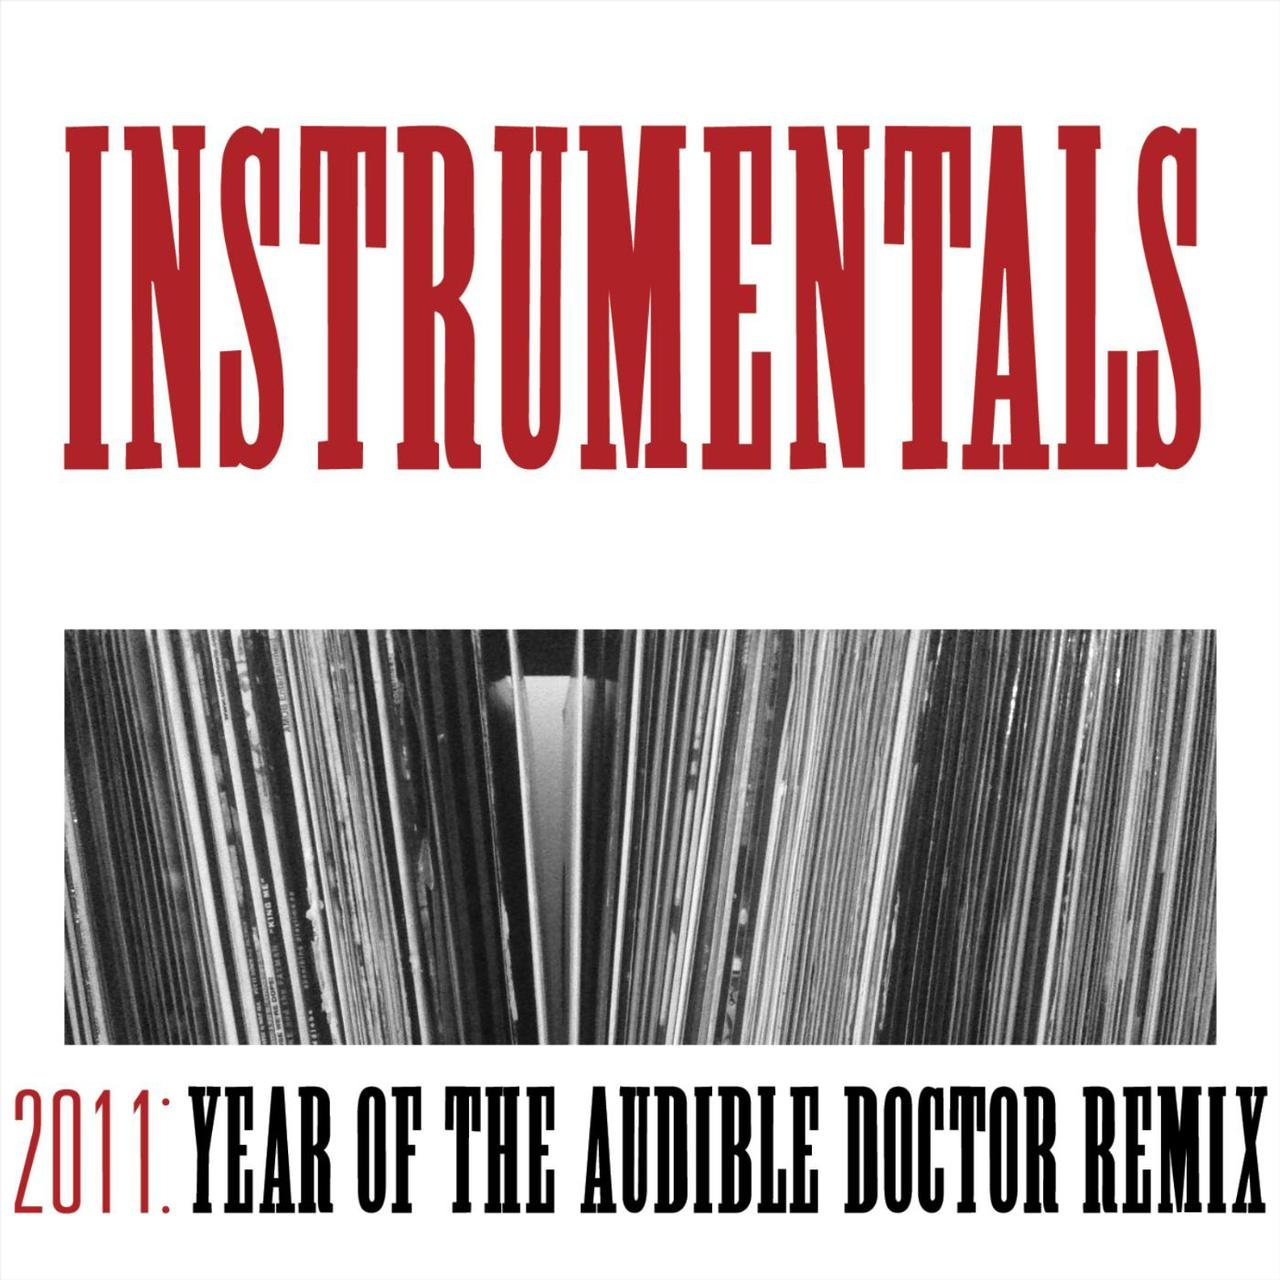 2011: Year of the Audible Doctor Remix (Instrumentals)